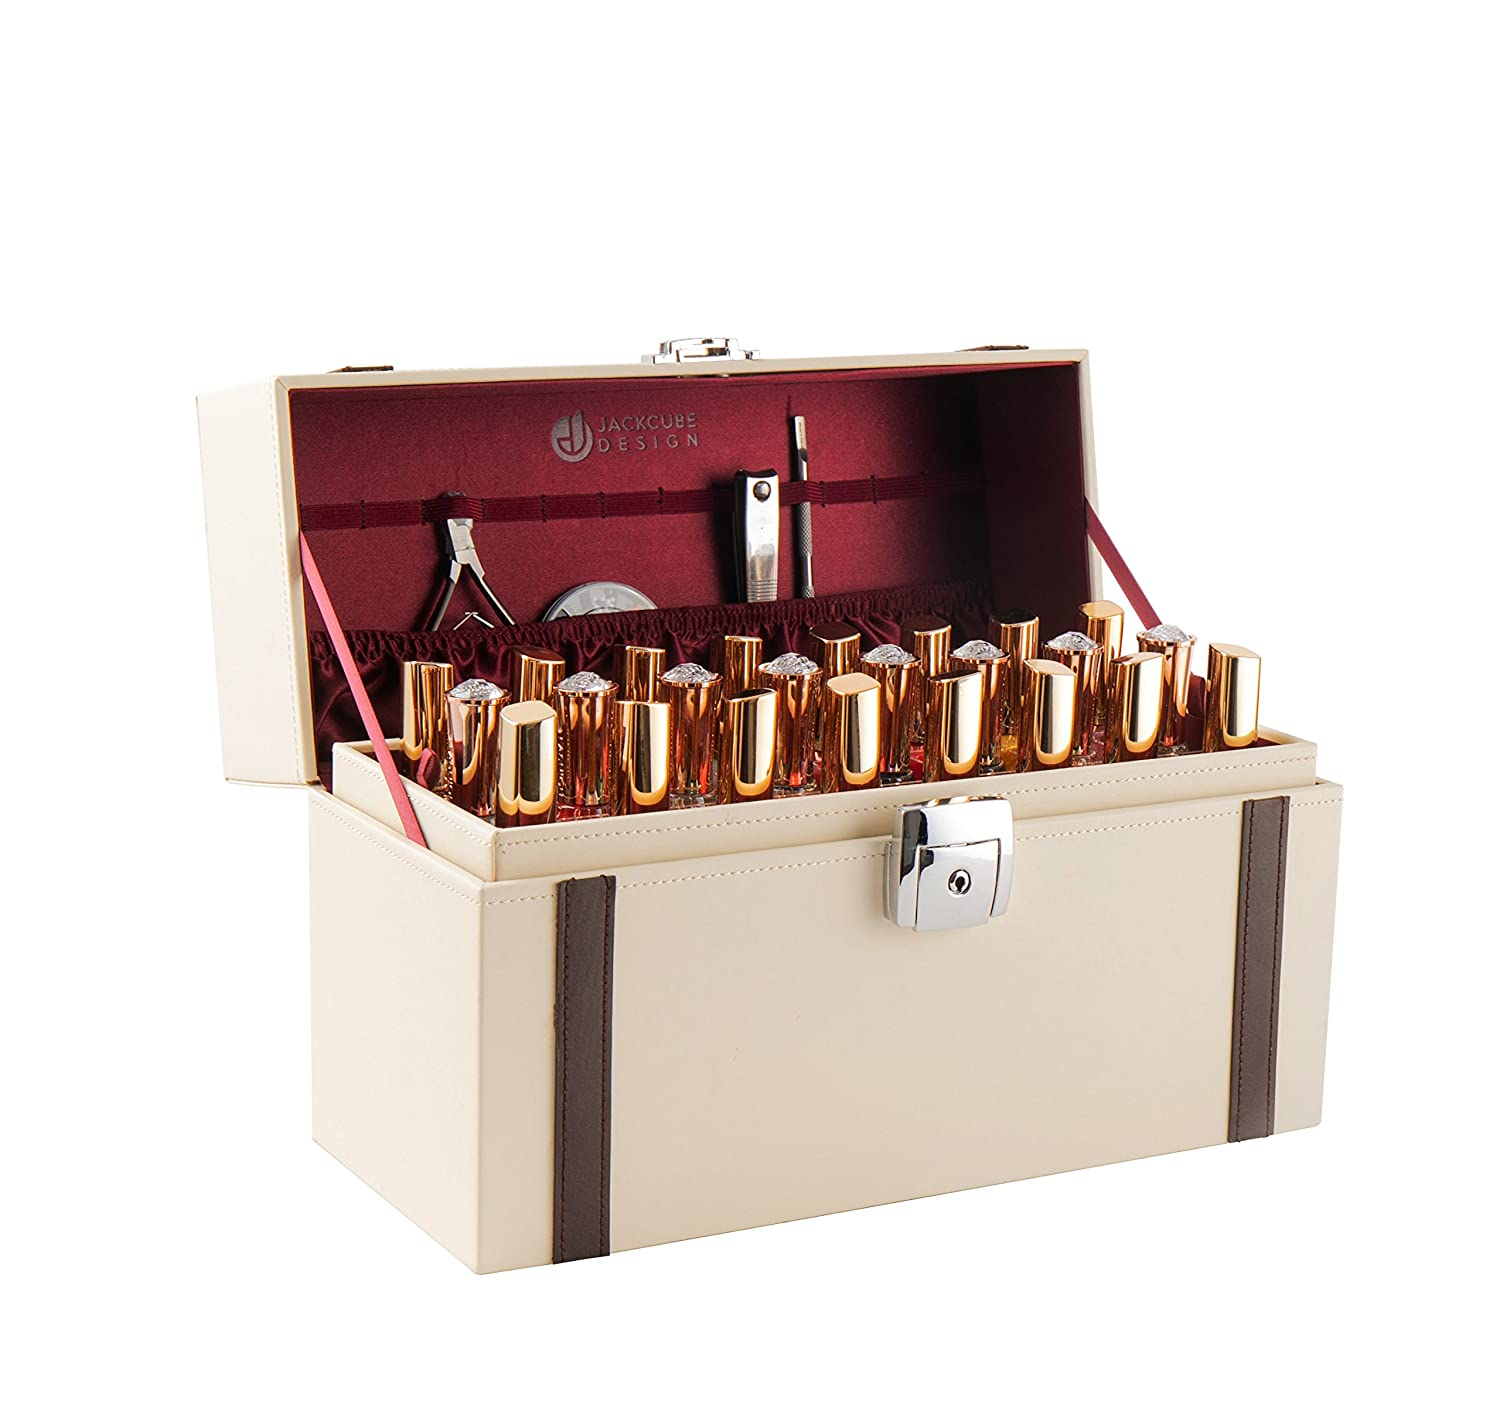 JackCubeDesign Nail Polish Organizer Makeup Train case 48 Compartments with Removable Tray Ivory Leather -MK406C